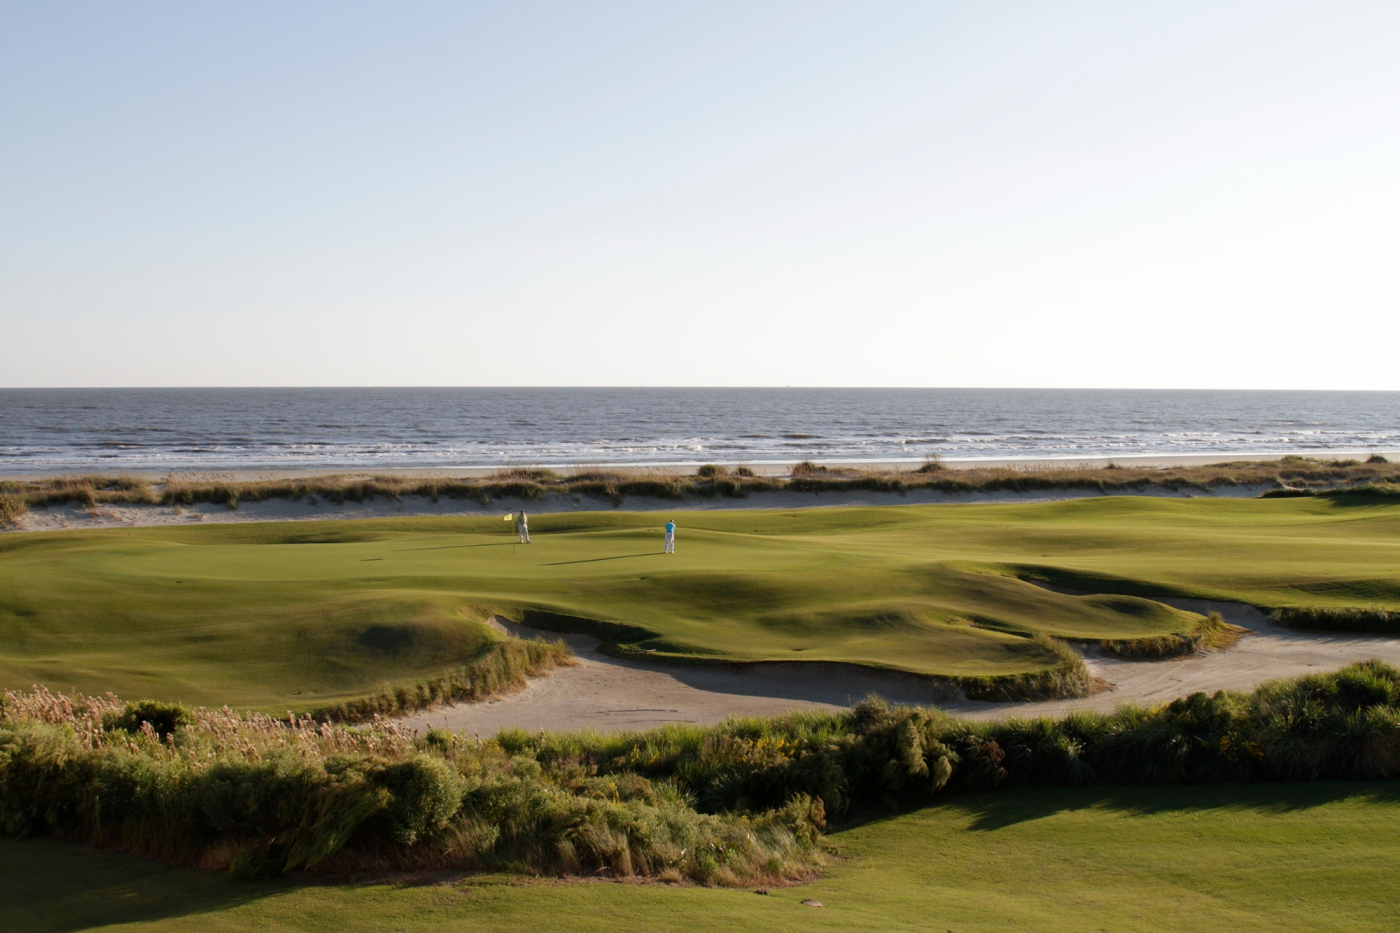 Kiawah's Ocean Course provides a beautiful escape for true golf enthusiasts and was home to the 2012 PGA Championship Tournament.